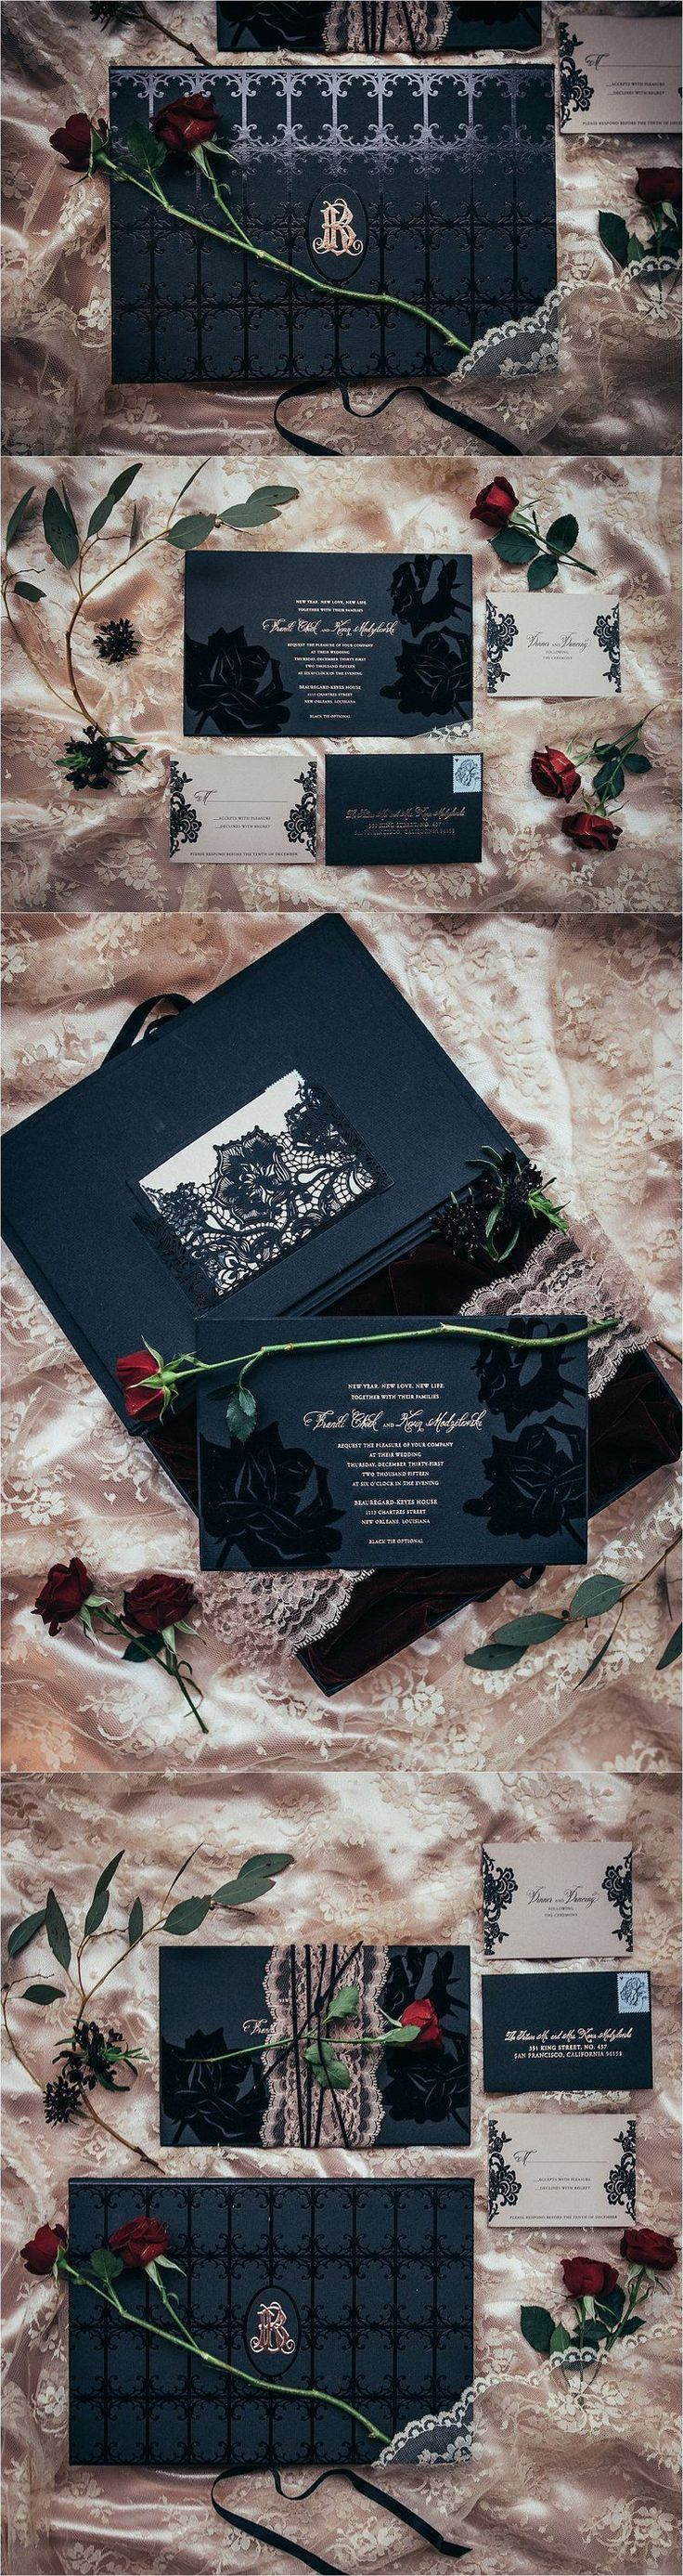 Sapphire Events | Eric James Photography | New Year's Eve Wedding | Gothic Wedding | Twilight Inspired Wedding | French Quarter Wedding | New Orleans Wedding | Pink Black Red Wedding | Lehr and Black | Boxed Invitation | Monogram